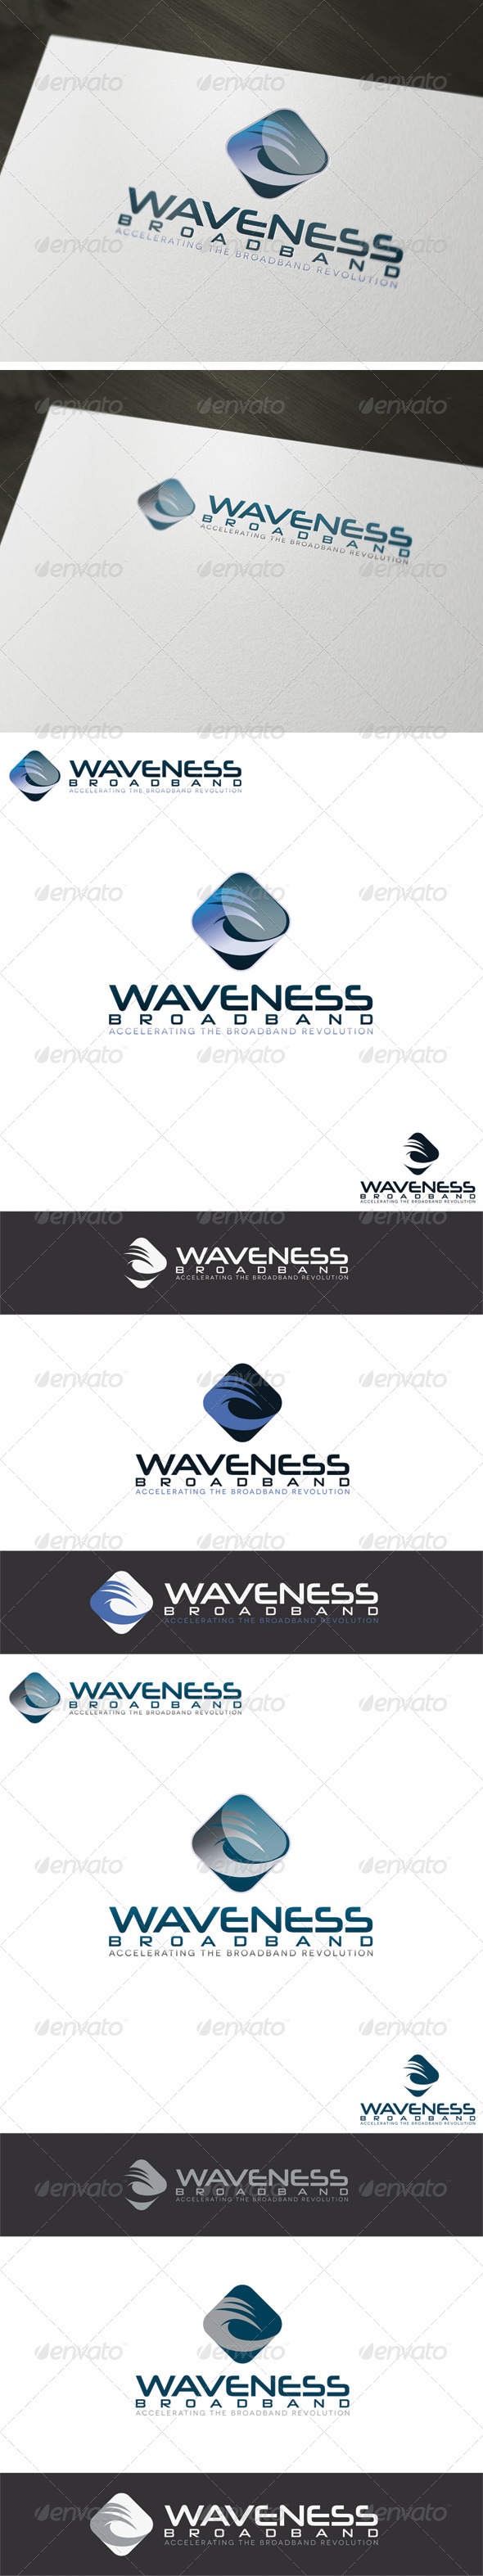 Broadband Logo Template - Vector Abstract